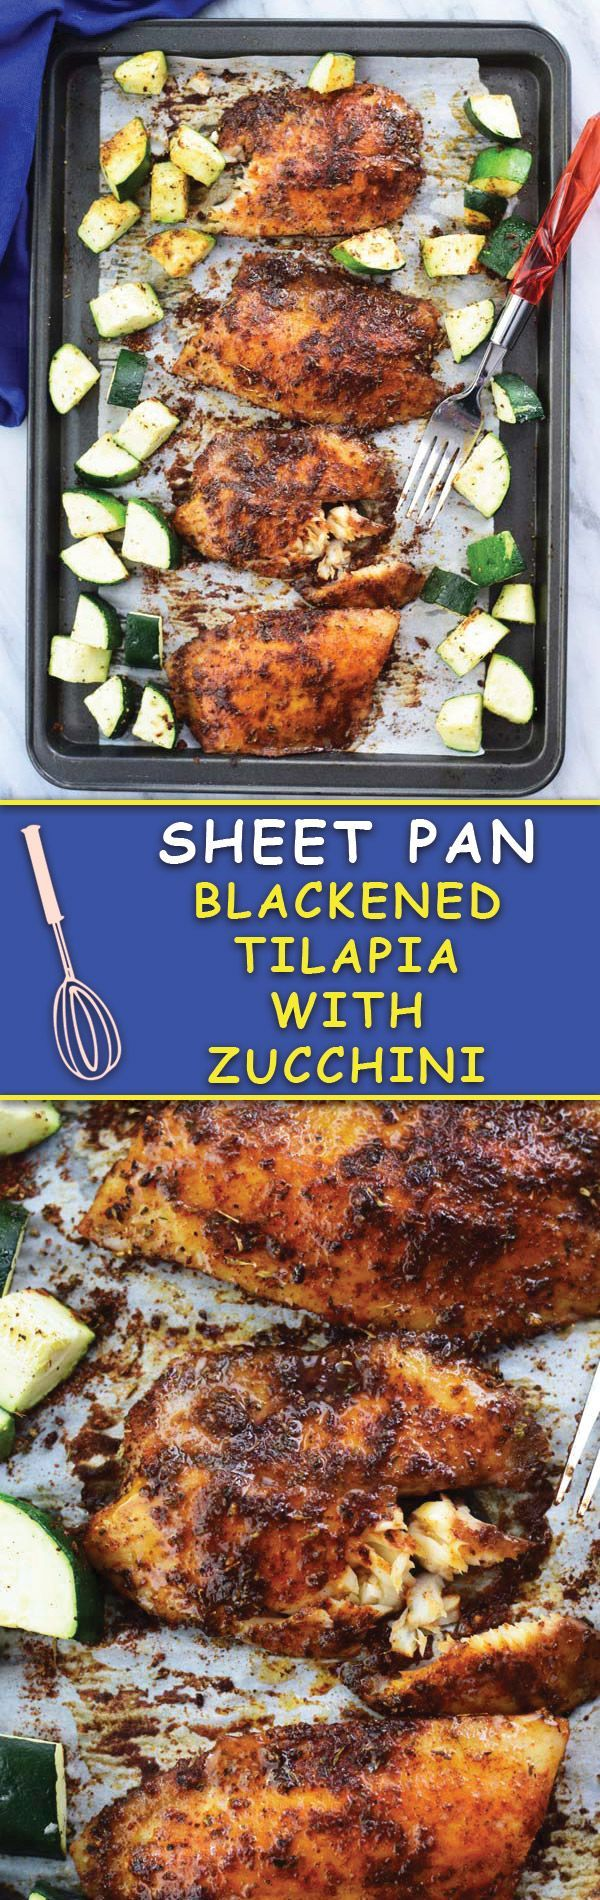 Sheet pan tilapia - a simple 30 MINS blackened tilapia with zucchini baked in sheet pan! FUSS FREE dinner ready in no time!